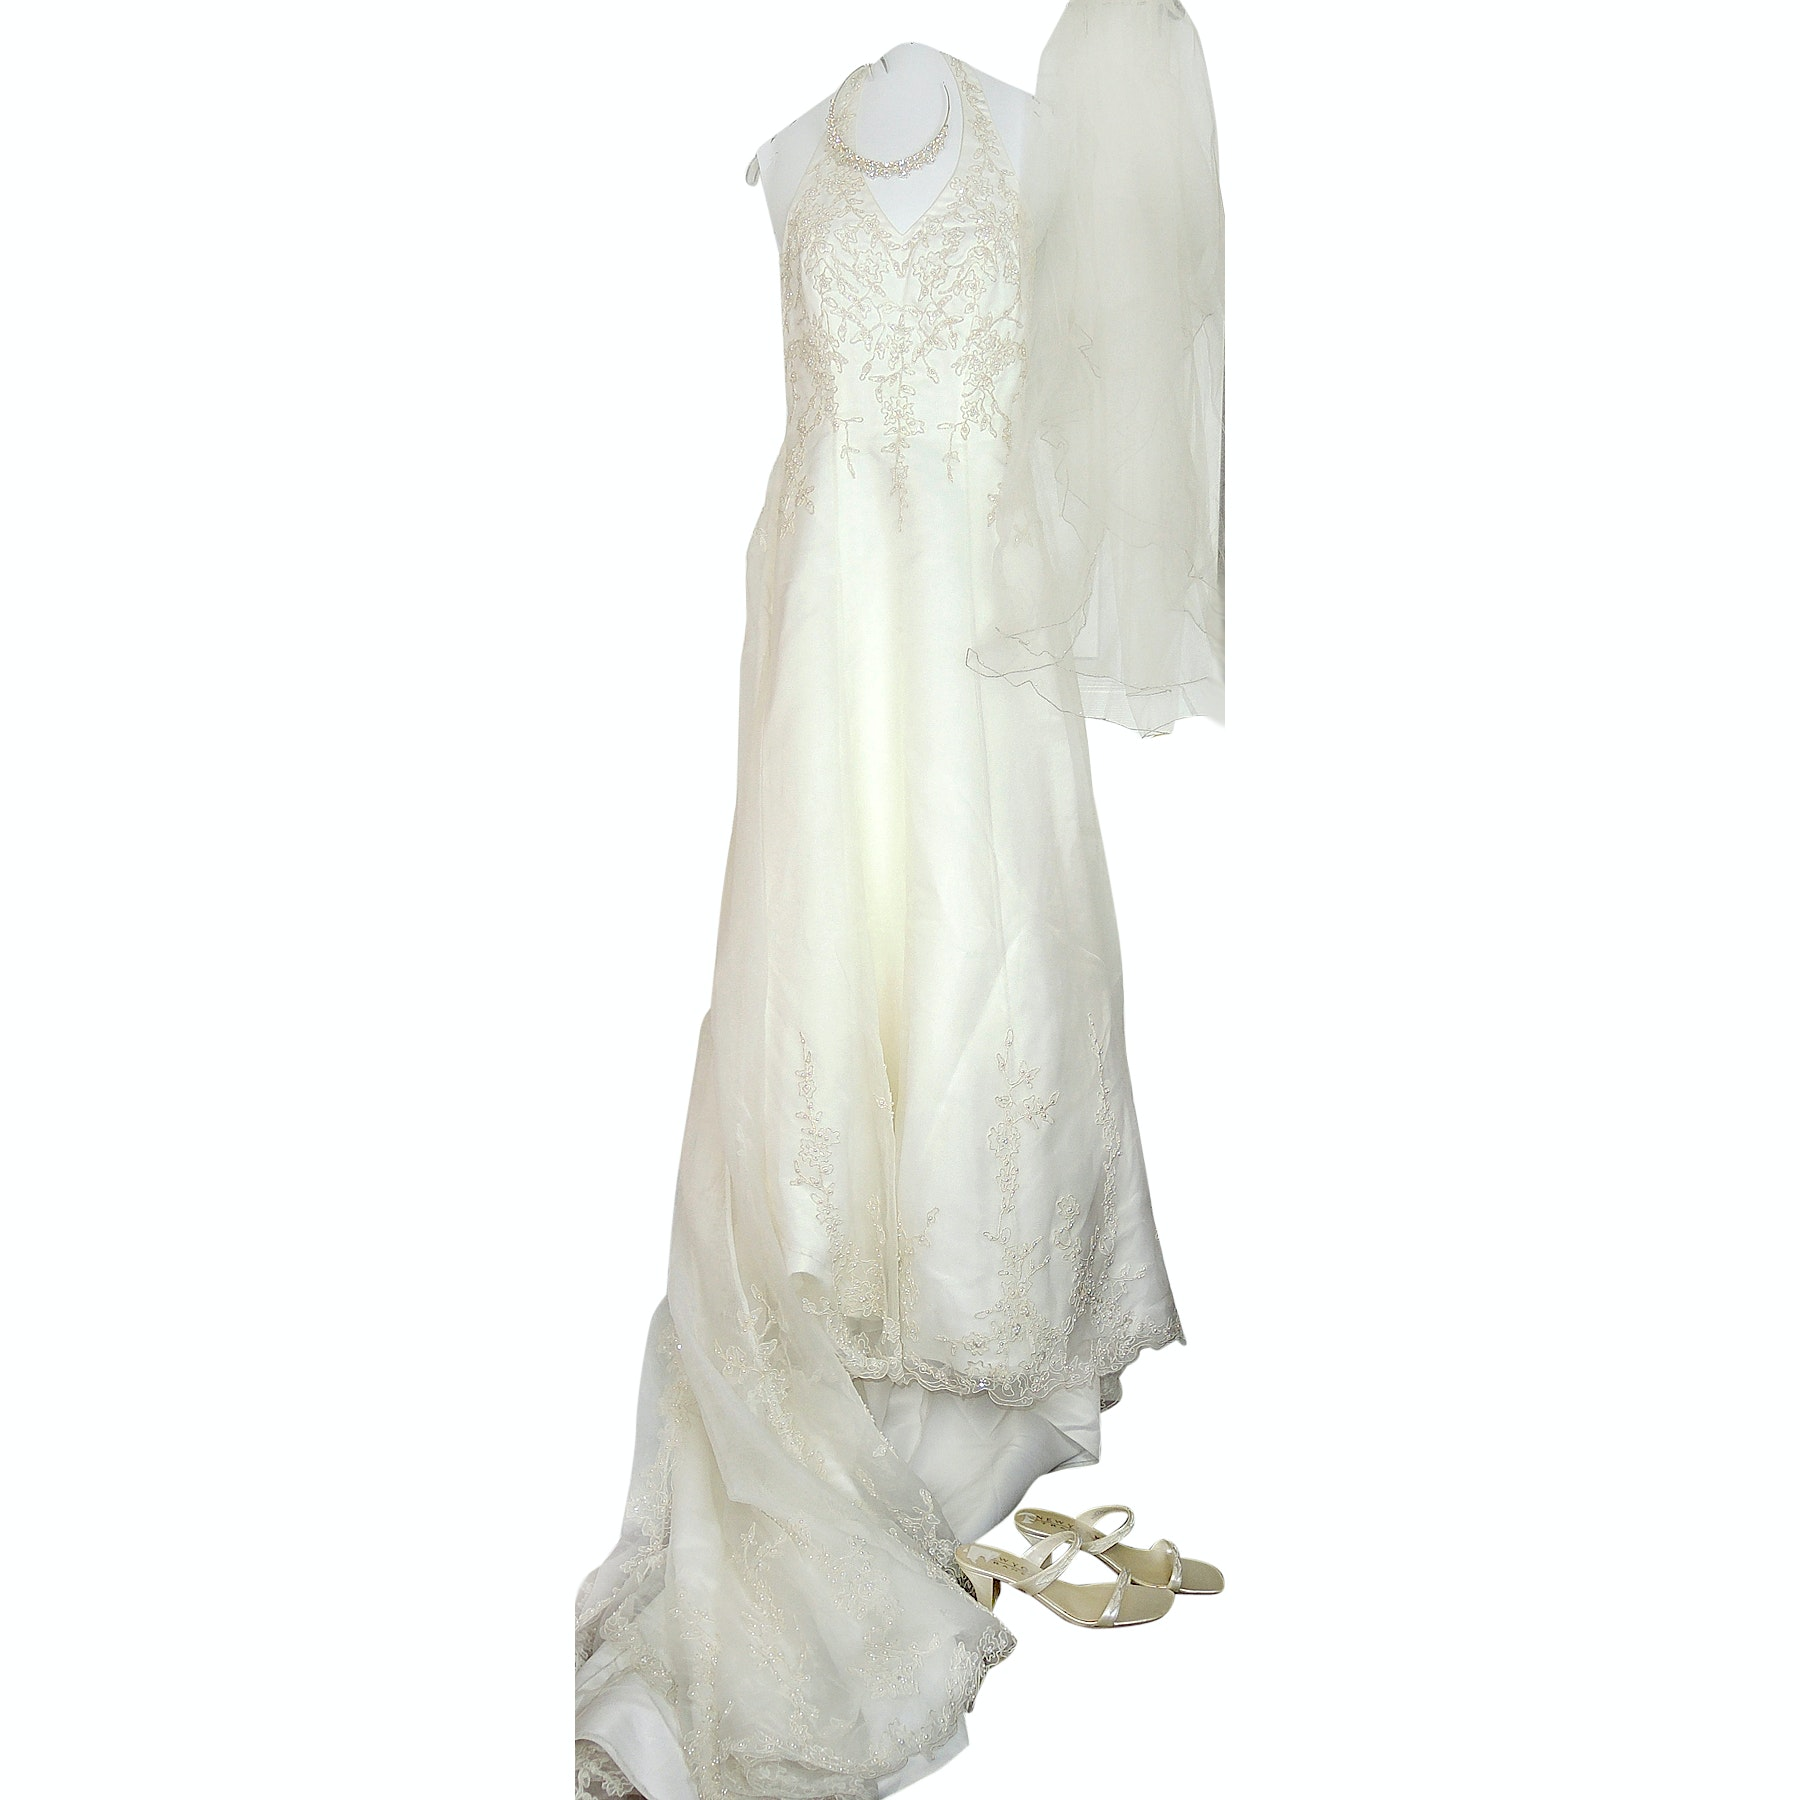 St. Tropez for David's Bridal Wedding Gown with Veil and Accessories